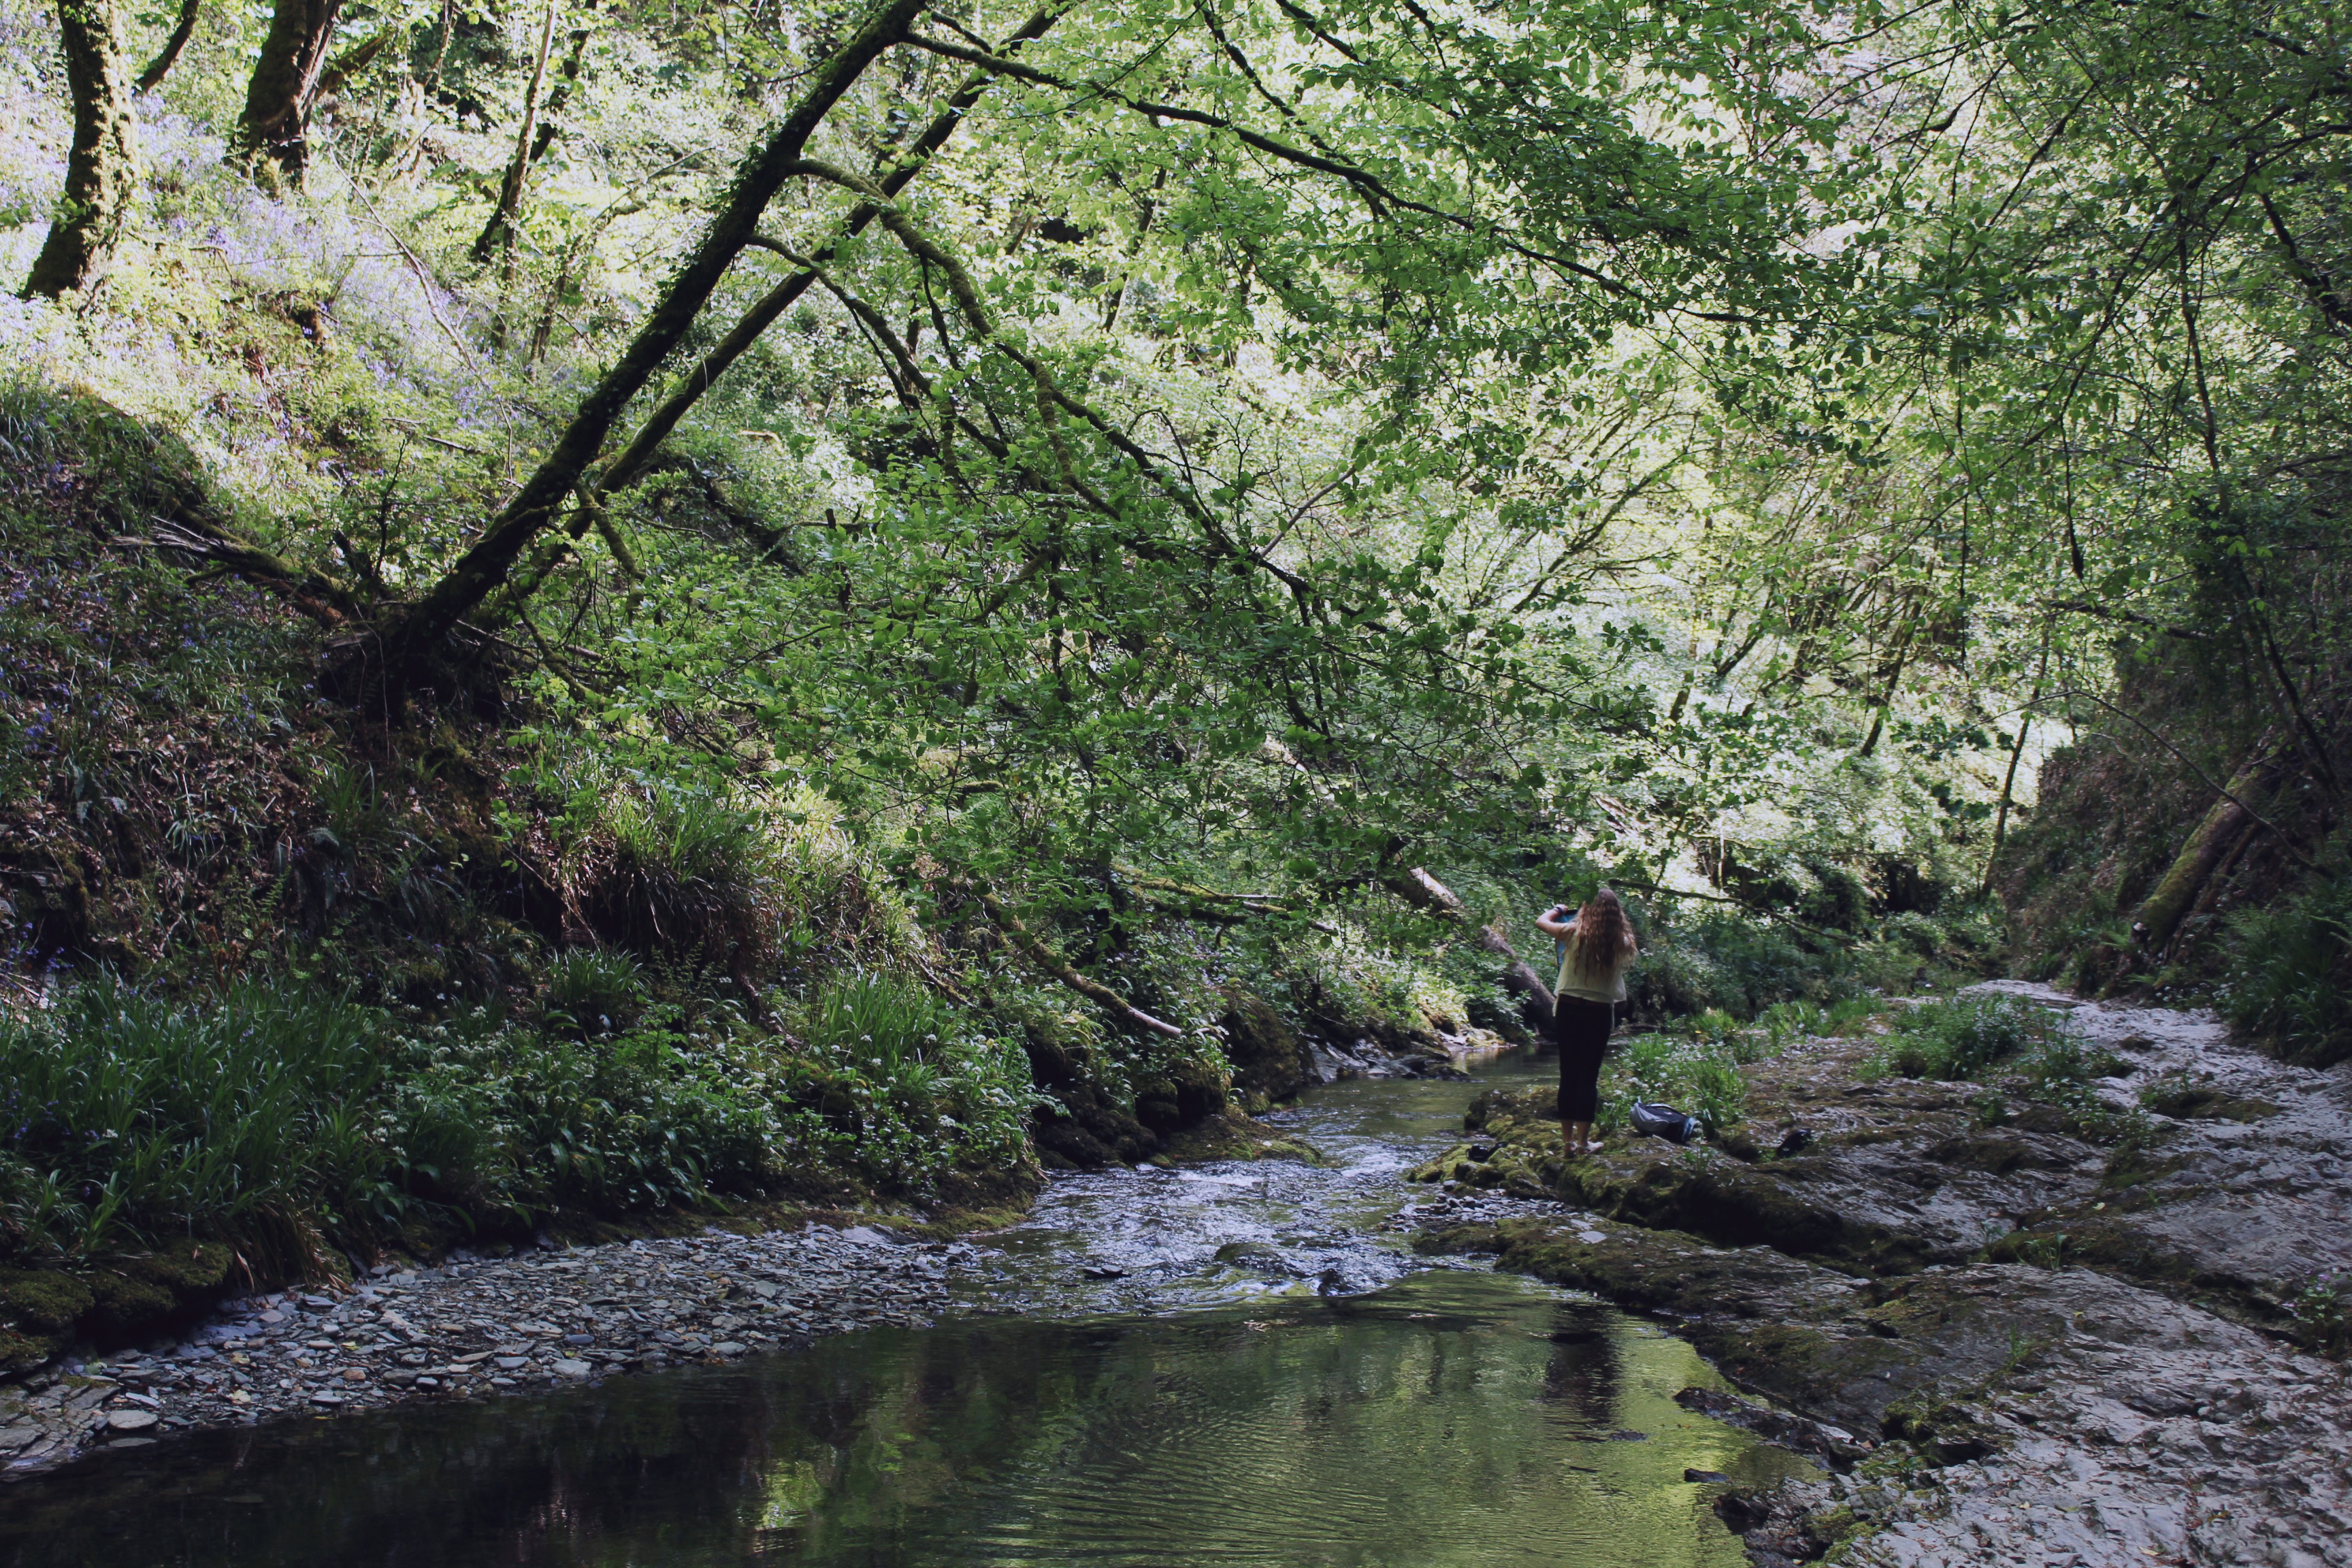 Girl by the river in the forest, at Lydford Gorge, Devon